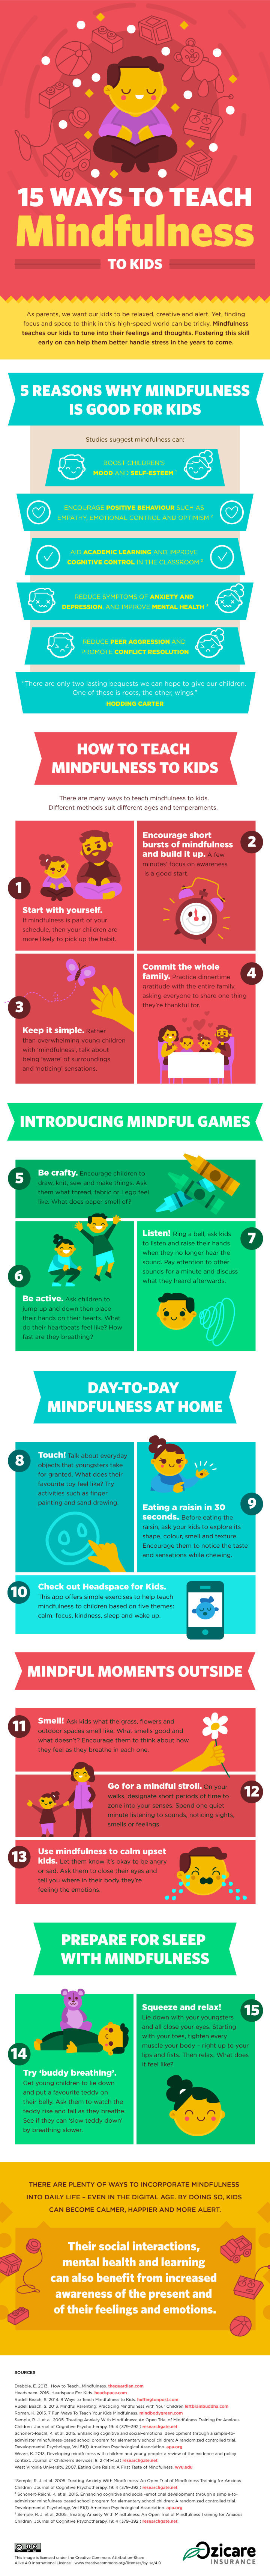 Clever Ways To Teach Mindfulness To